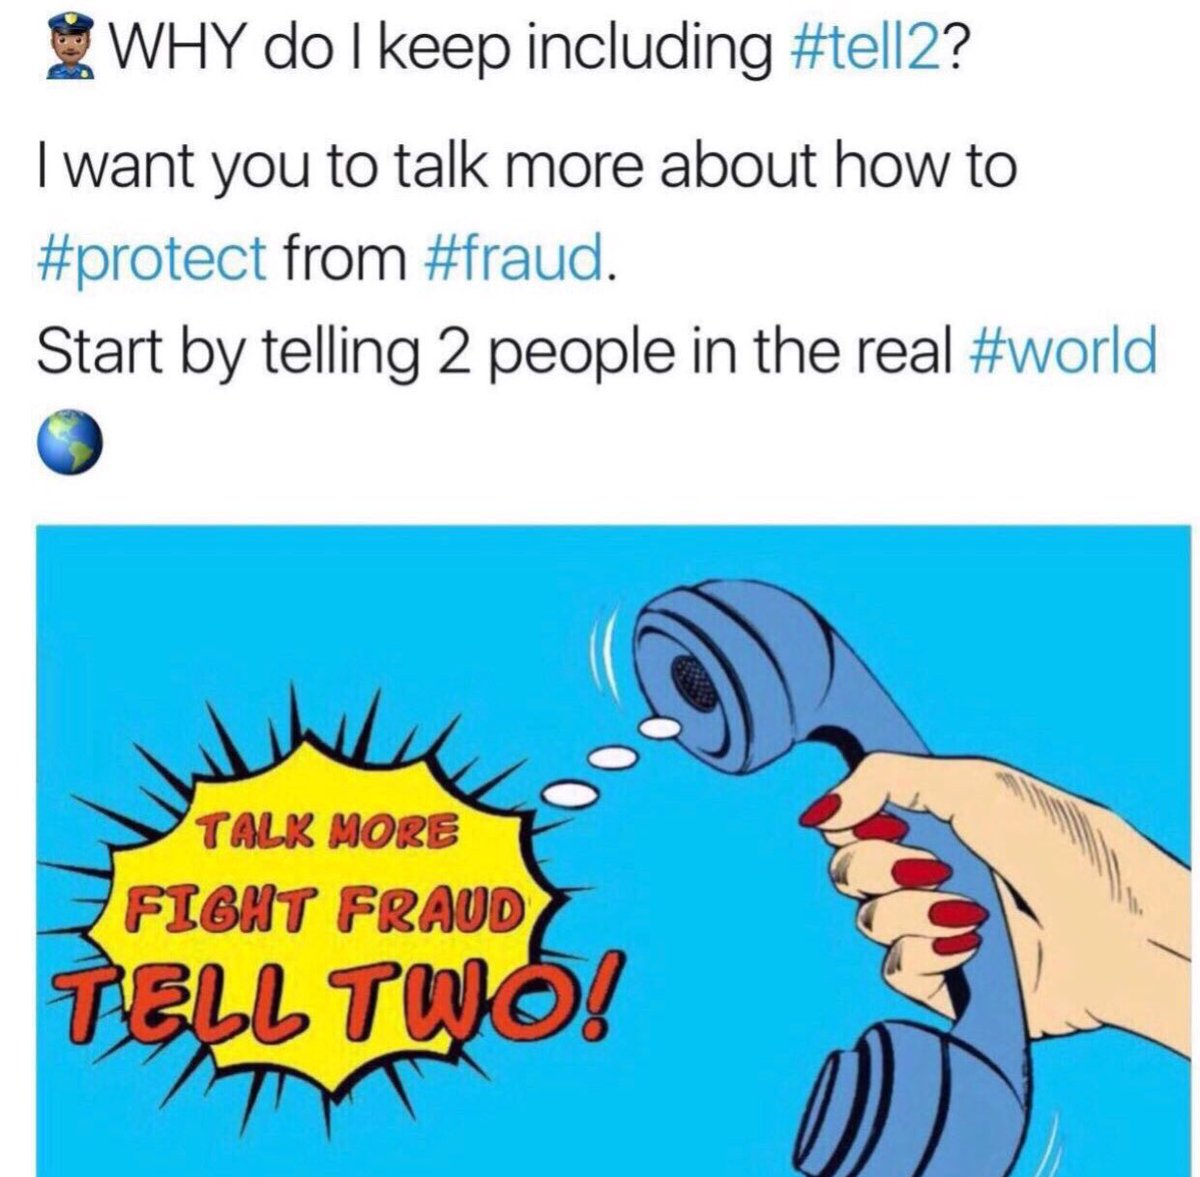 Love now on @LisaShawRadio @bbcnewcastle ,Martin Wilson from @nerccu talking about how to protect from #Cybercrime - listen and then #Tell2<br>http://pic.twitter.com/HtYEAZF9hy